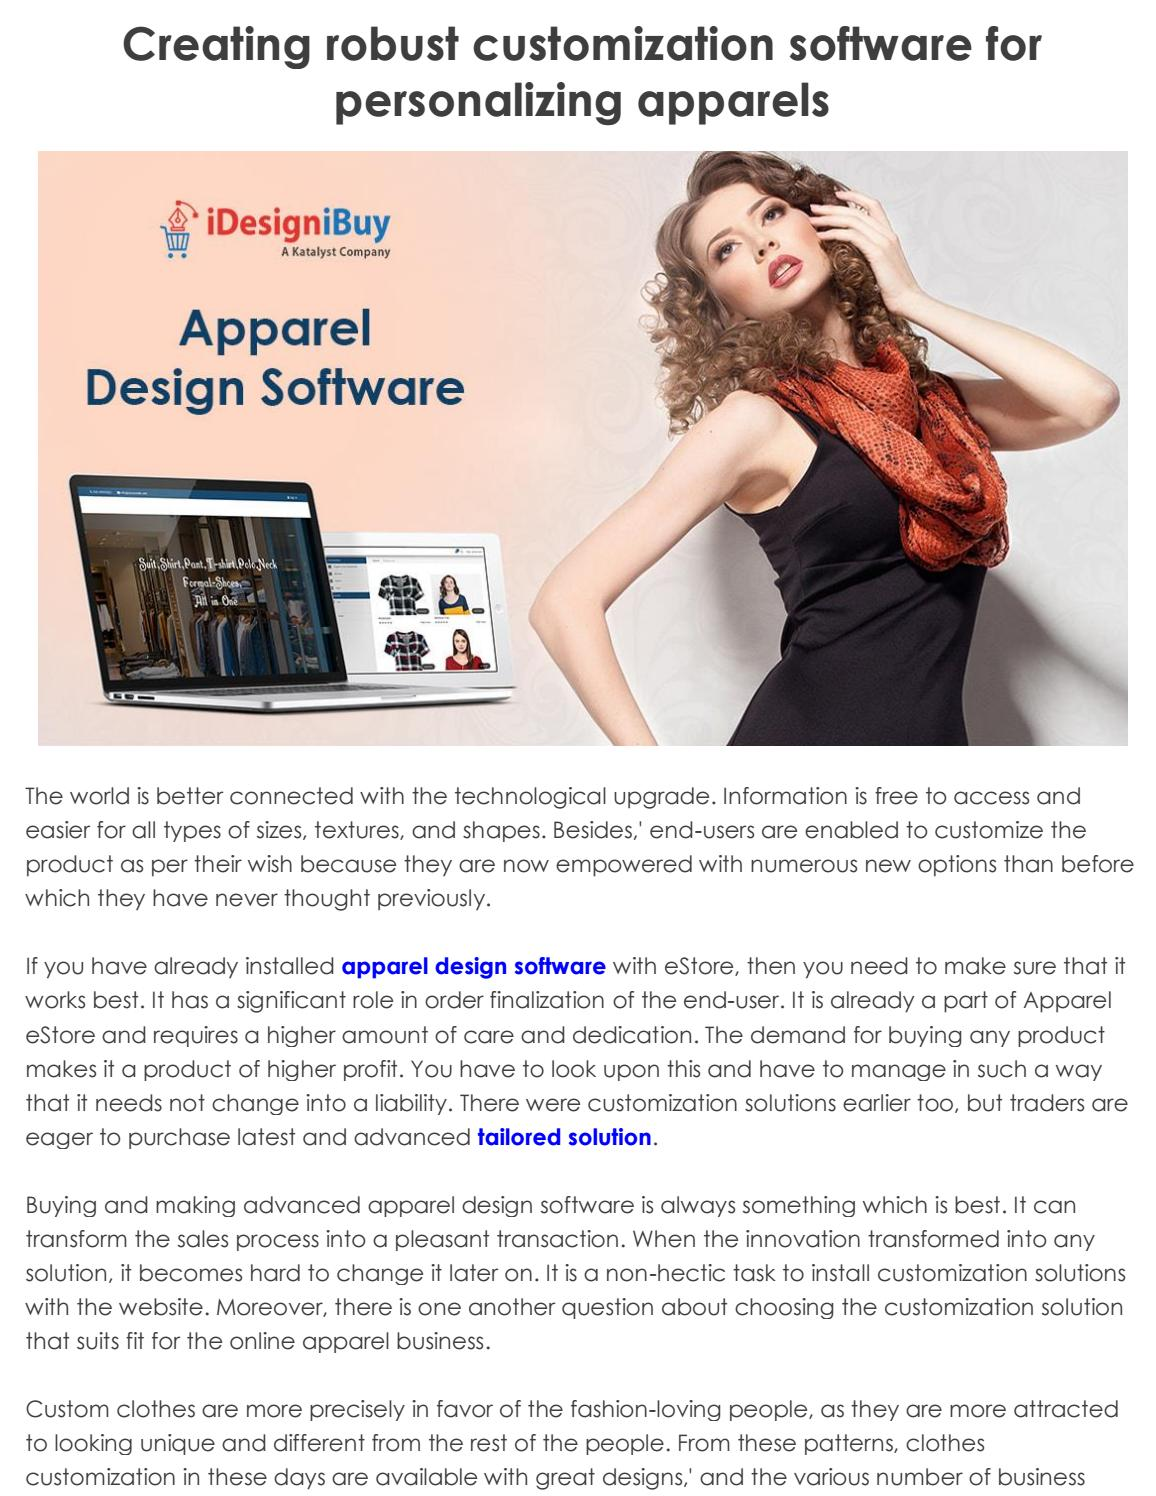 Creating robust customization software for personalizing